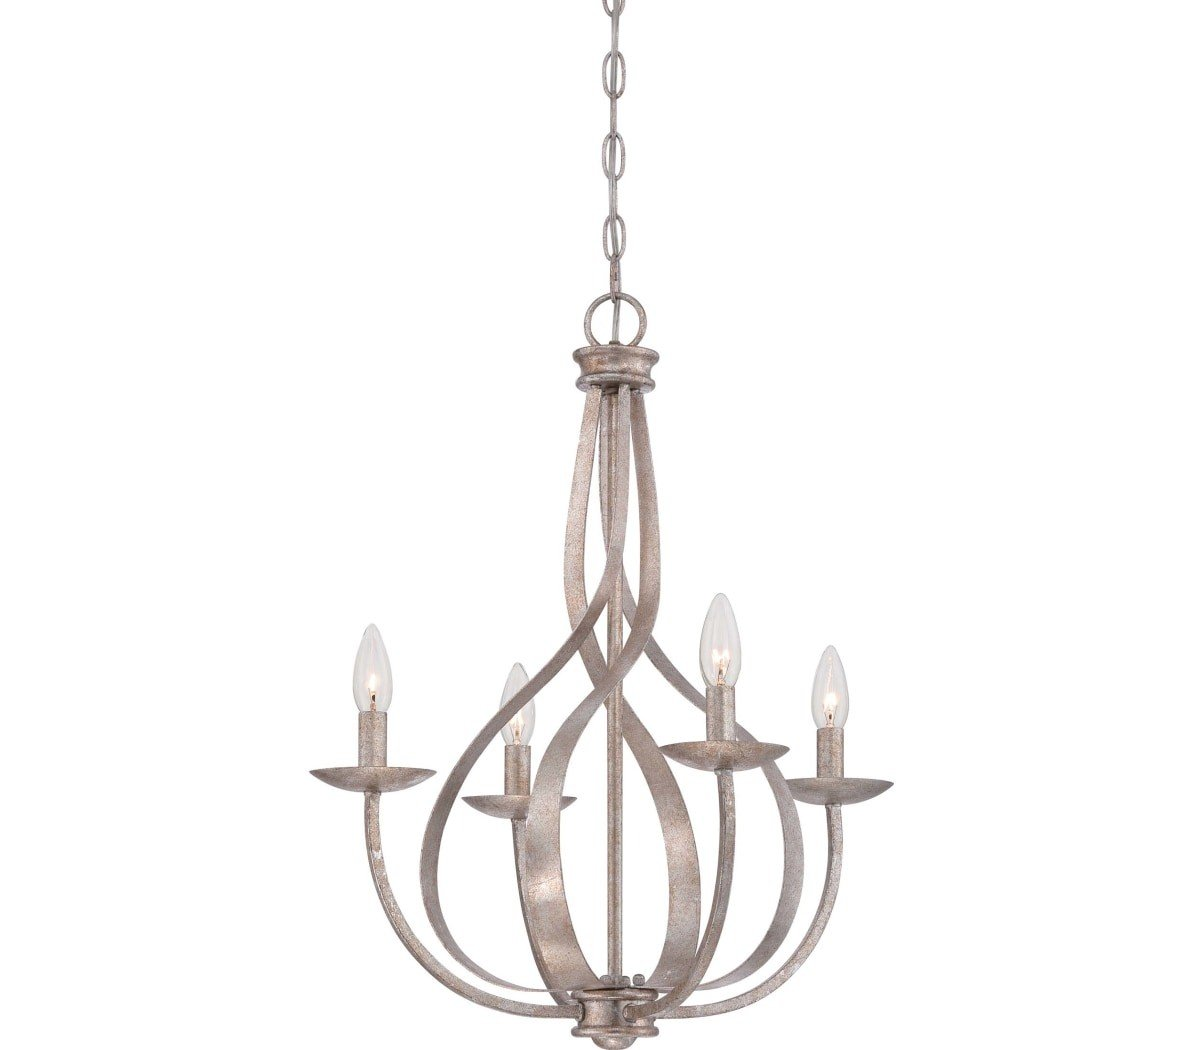 quoizel lighting serenity quoizel-serenity-chandelier